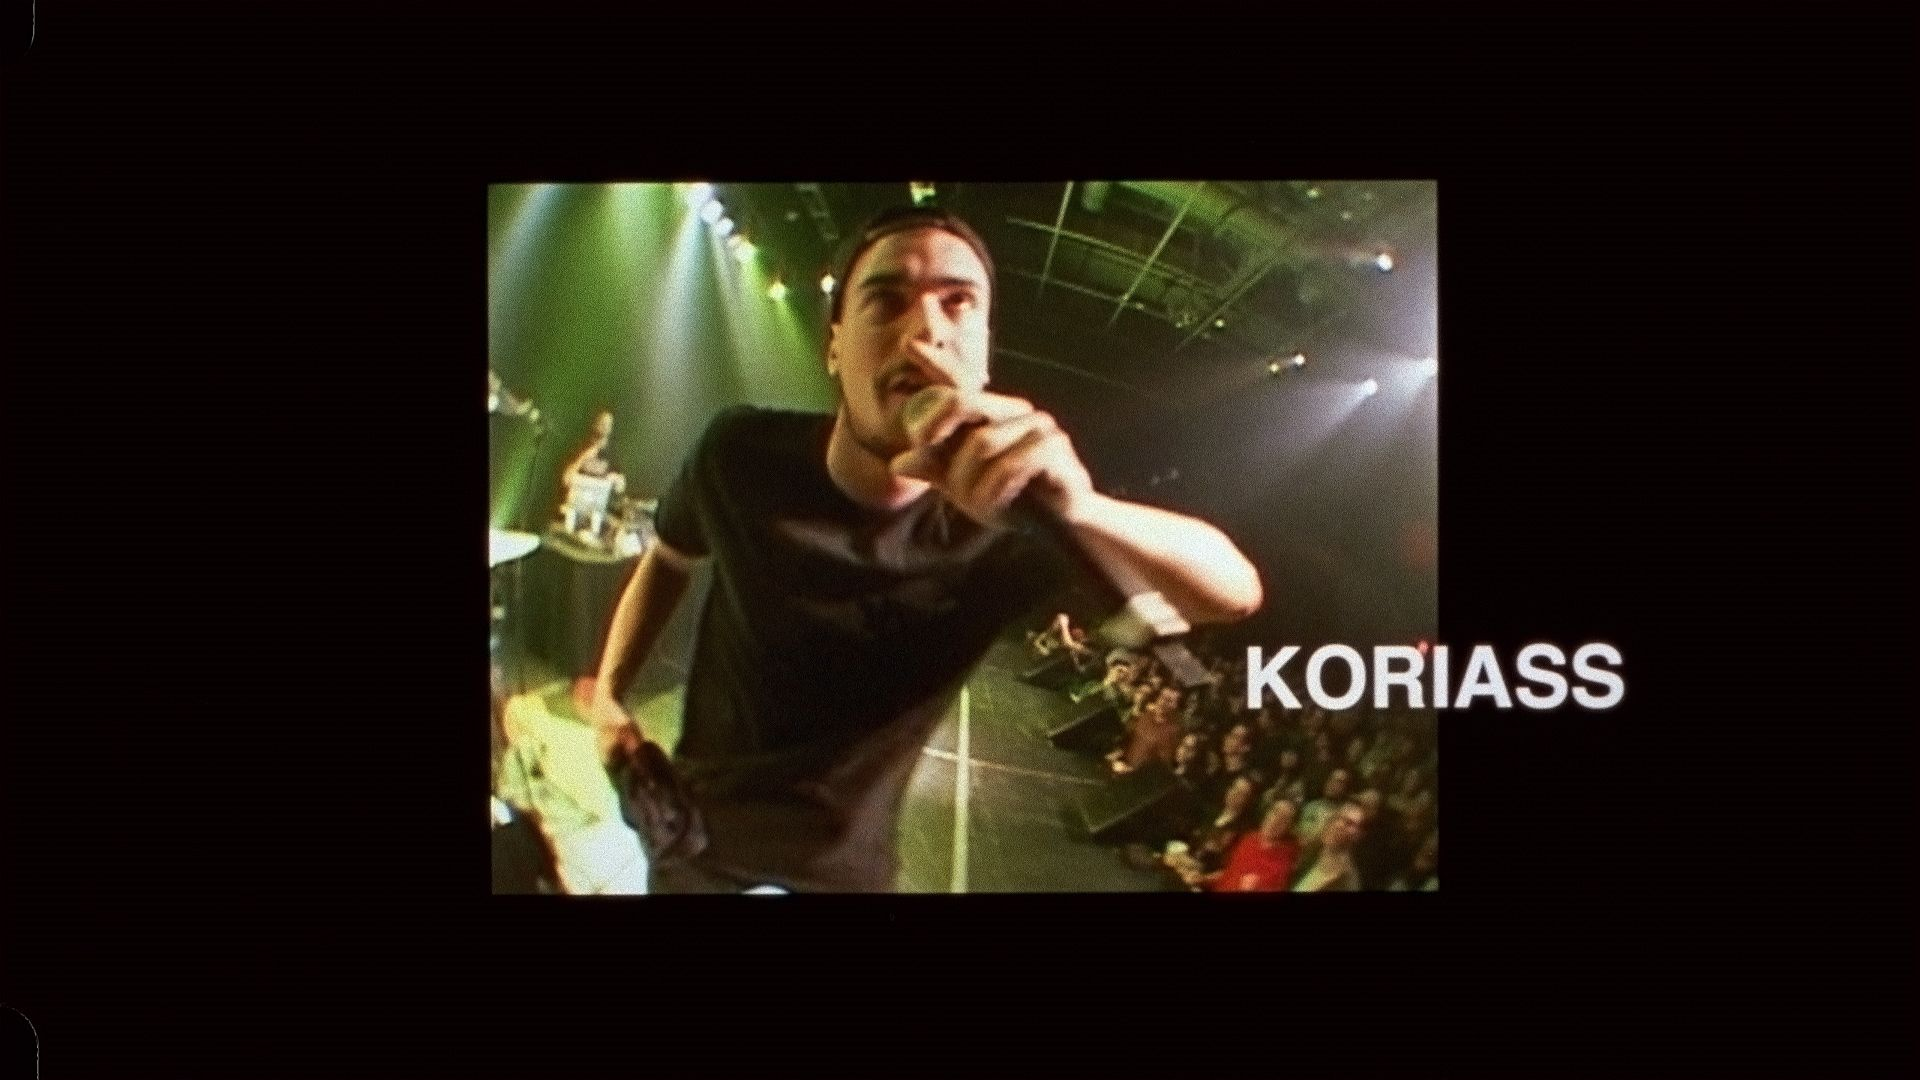 rapper Koriass singing on stage making faces for L'Osstidfilm documentary filmed by Vincent Ruel-Cote from Les Gamins about L'Osstidtour